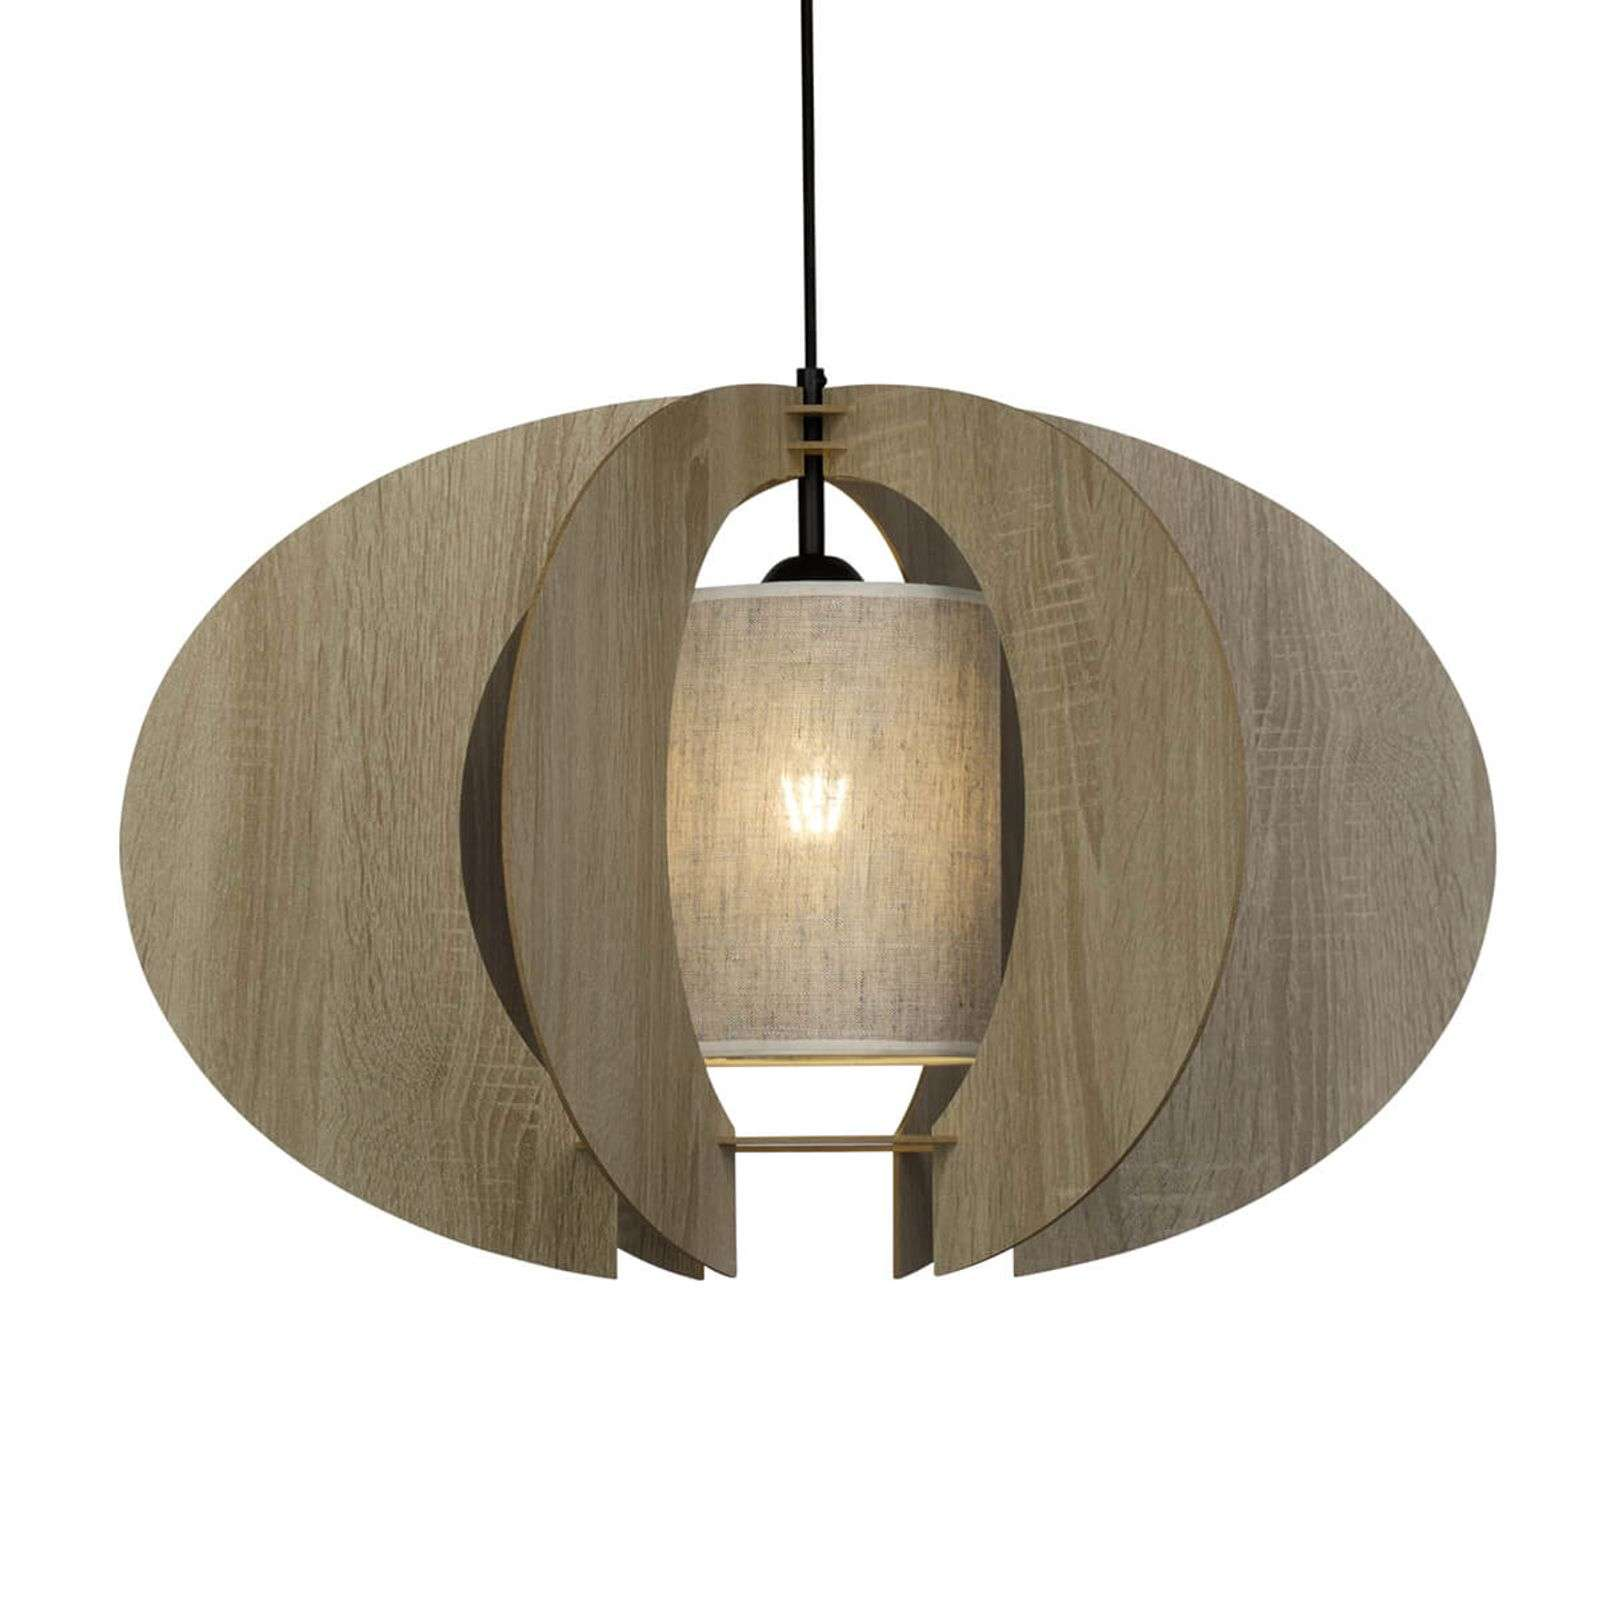 Belle suspension en bois Wings